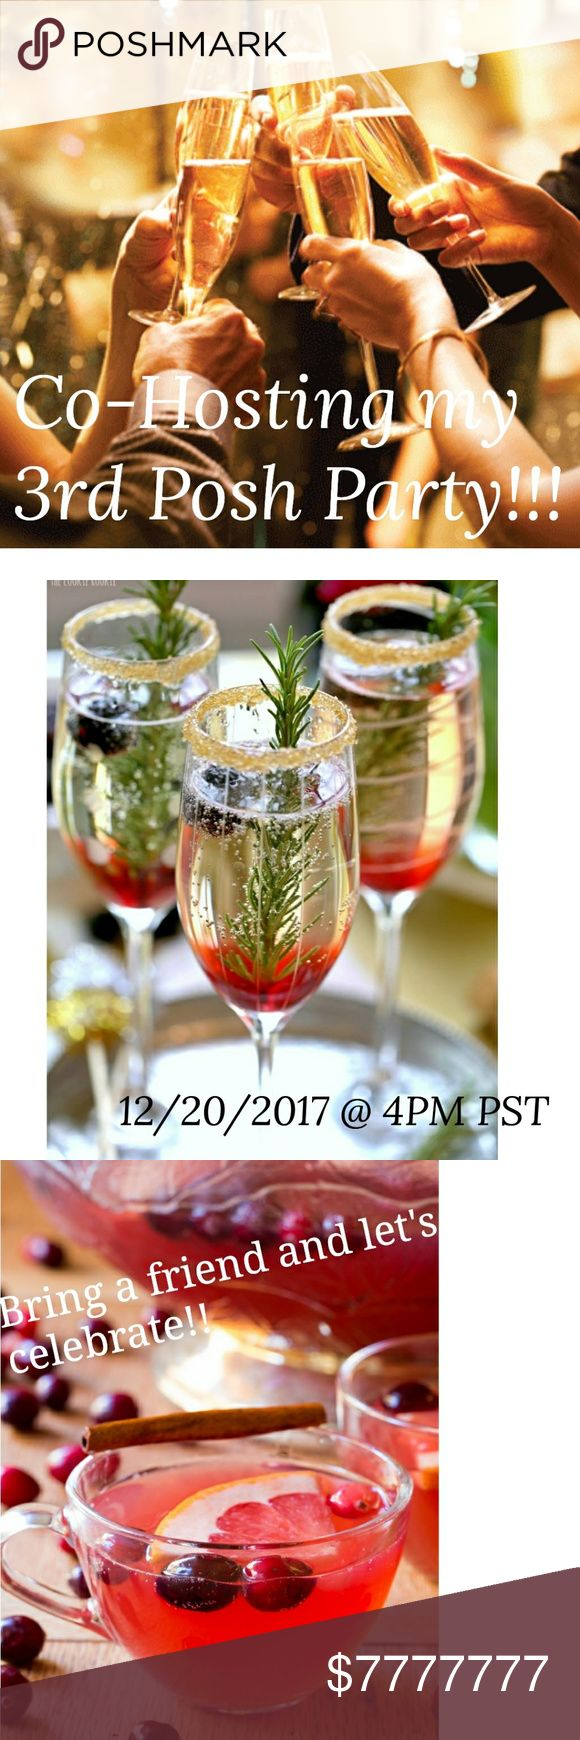 PARTY TIME!!!!! December 20th @4PM. Theme TBA.  Stay tuned for more info. Other